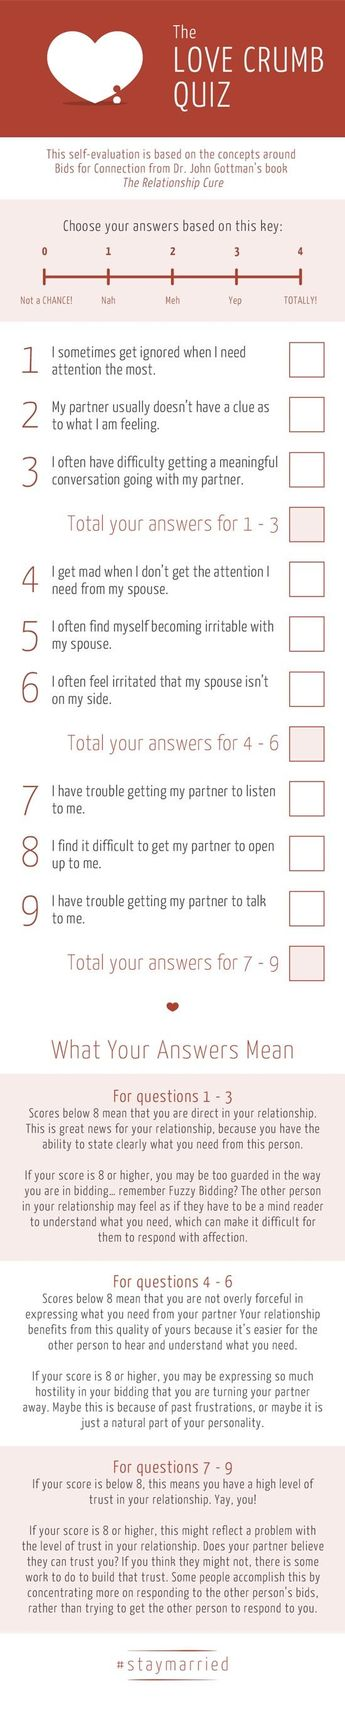 The #staymarried Love Crumb Quiz - A self-evaluation based on the